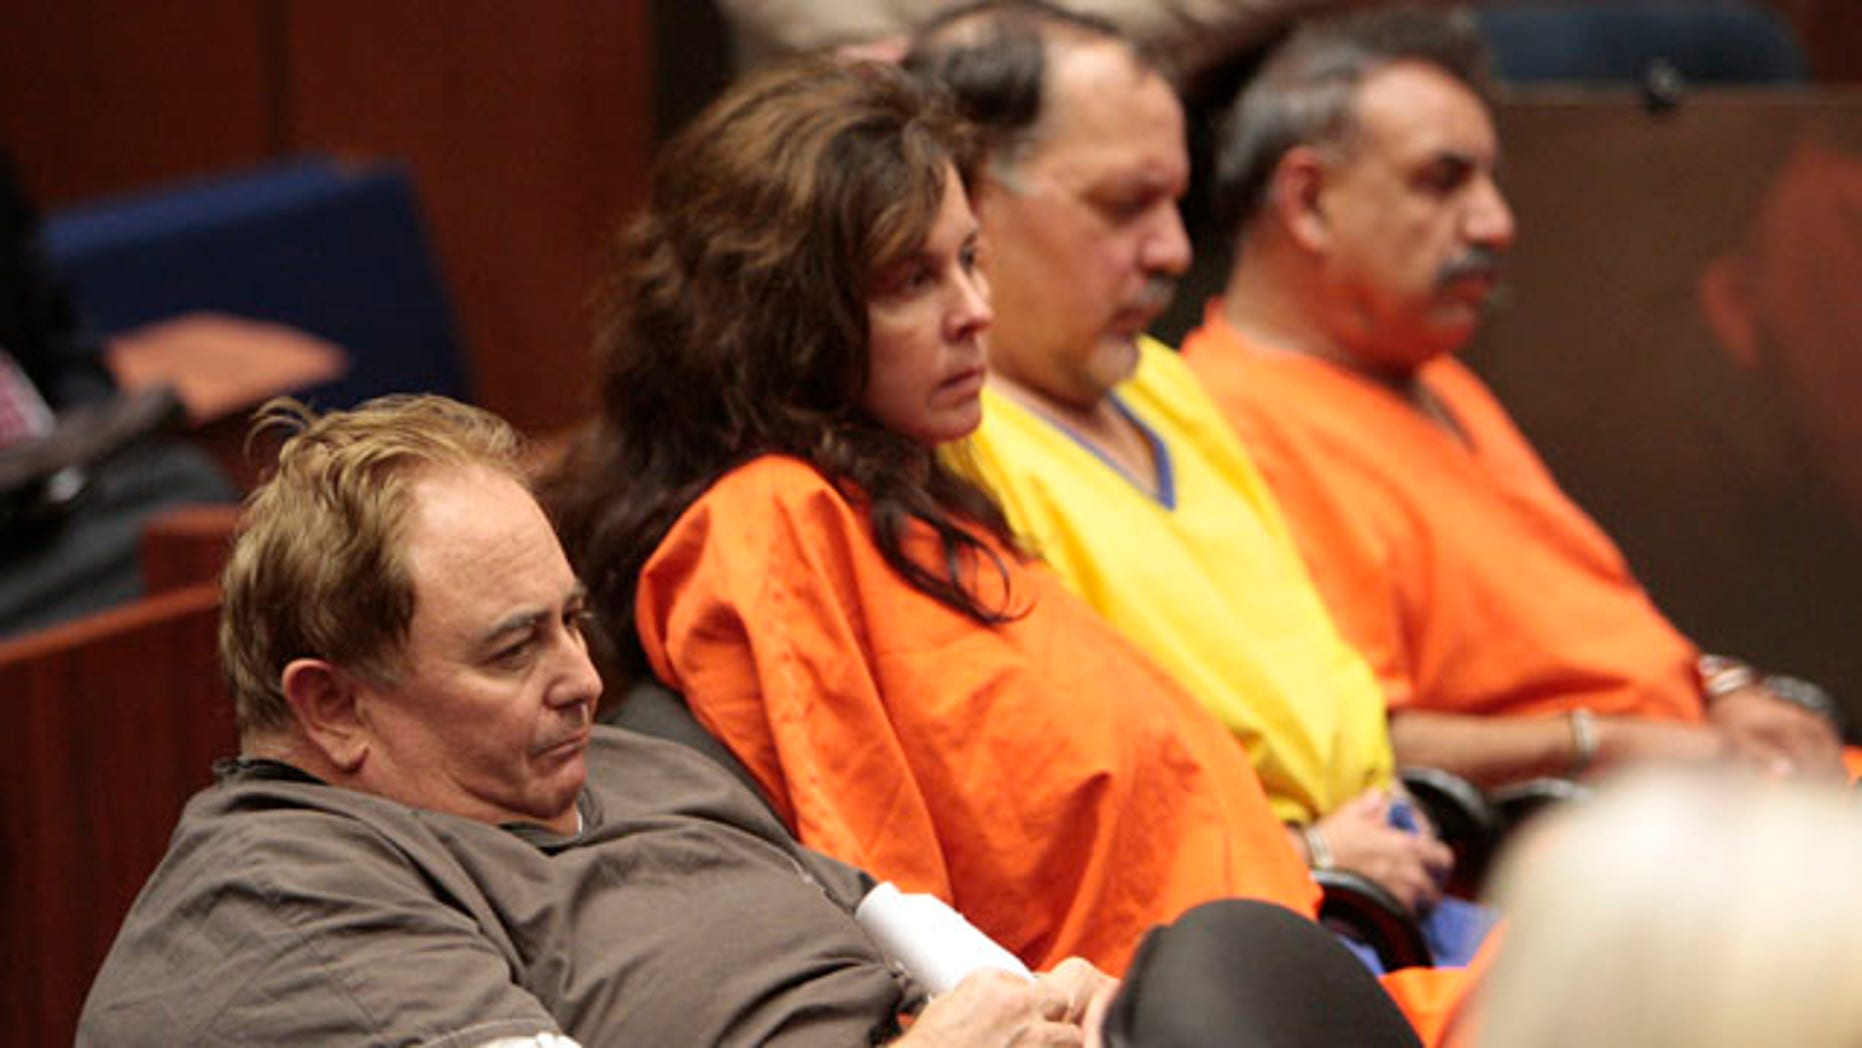 Several Bell officials face criminal charges, including (from l.) Robert Rizzo, Angela Spaccia, Victor Bello and former Mayor Oscar Hernandez. Here they are seen at a Los Angeles County Superior Court bail hearing. (AP)